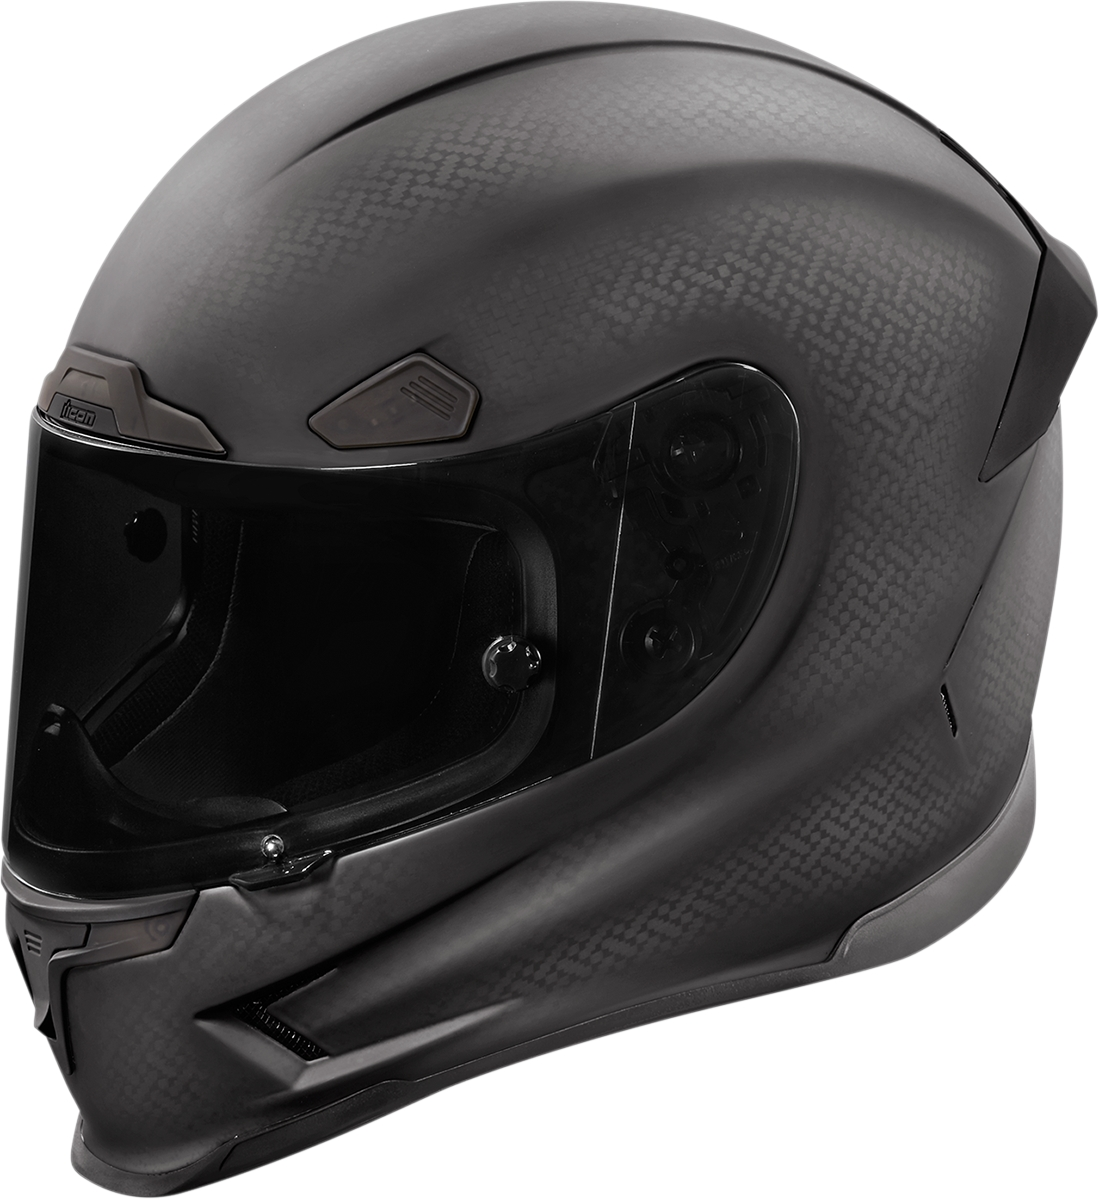 Icon Airframe Pro Ghost Carbon Full Face Race Motorcycle  : 561eb182 dfd8 4b33 b4bb 220f8e808a4d AirframeProGhostCarbonHelmet <strong>Green</strong> Motorcycle Helmet from www.ebay.com size 1099 x 1200 jpeg 488kB